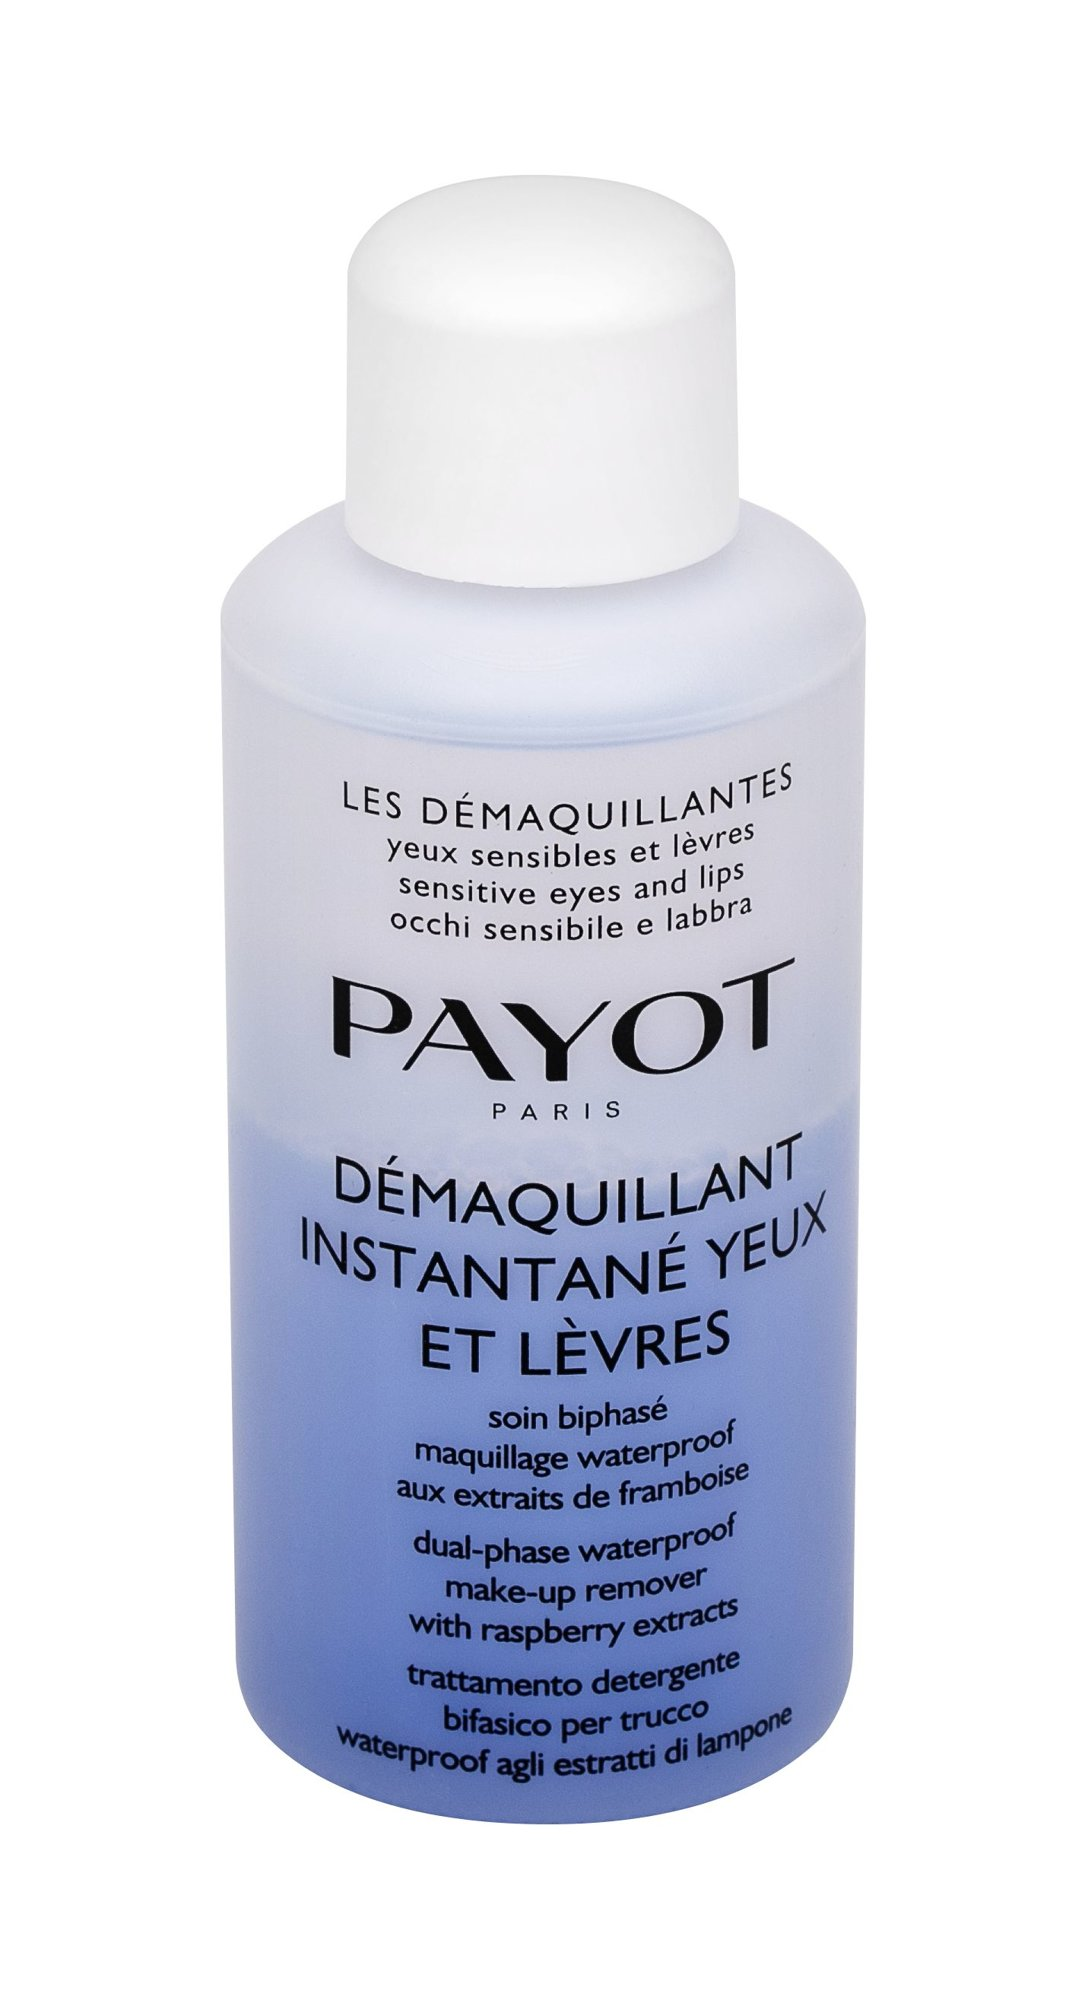 PAYOT Les Démaquillantes Eye Makeup Remover 200ml